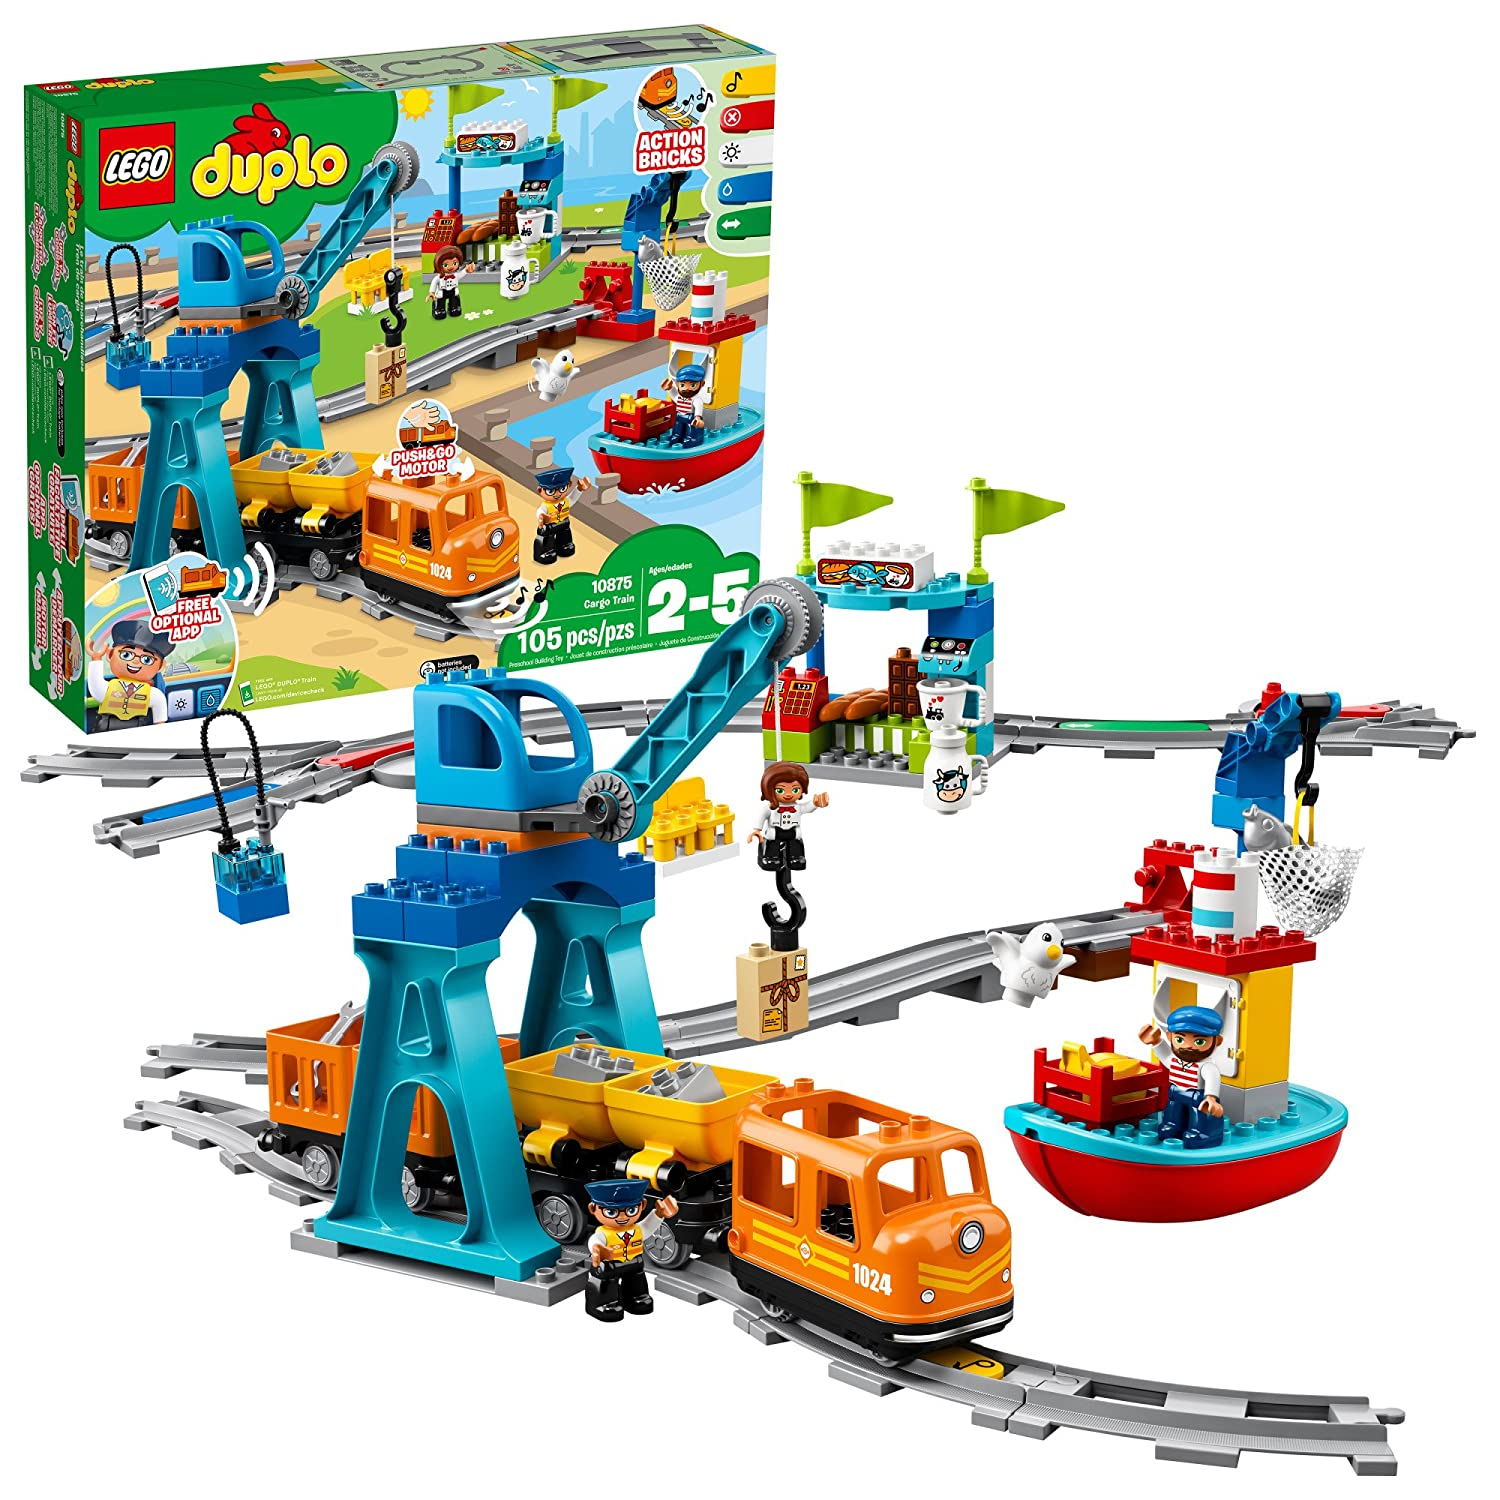 Top 9 Best Train Sets for Toddlers (2019 Reviews) 6